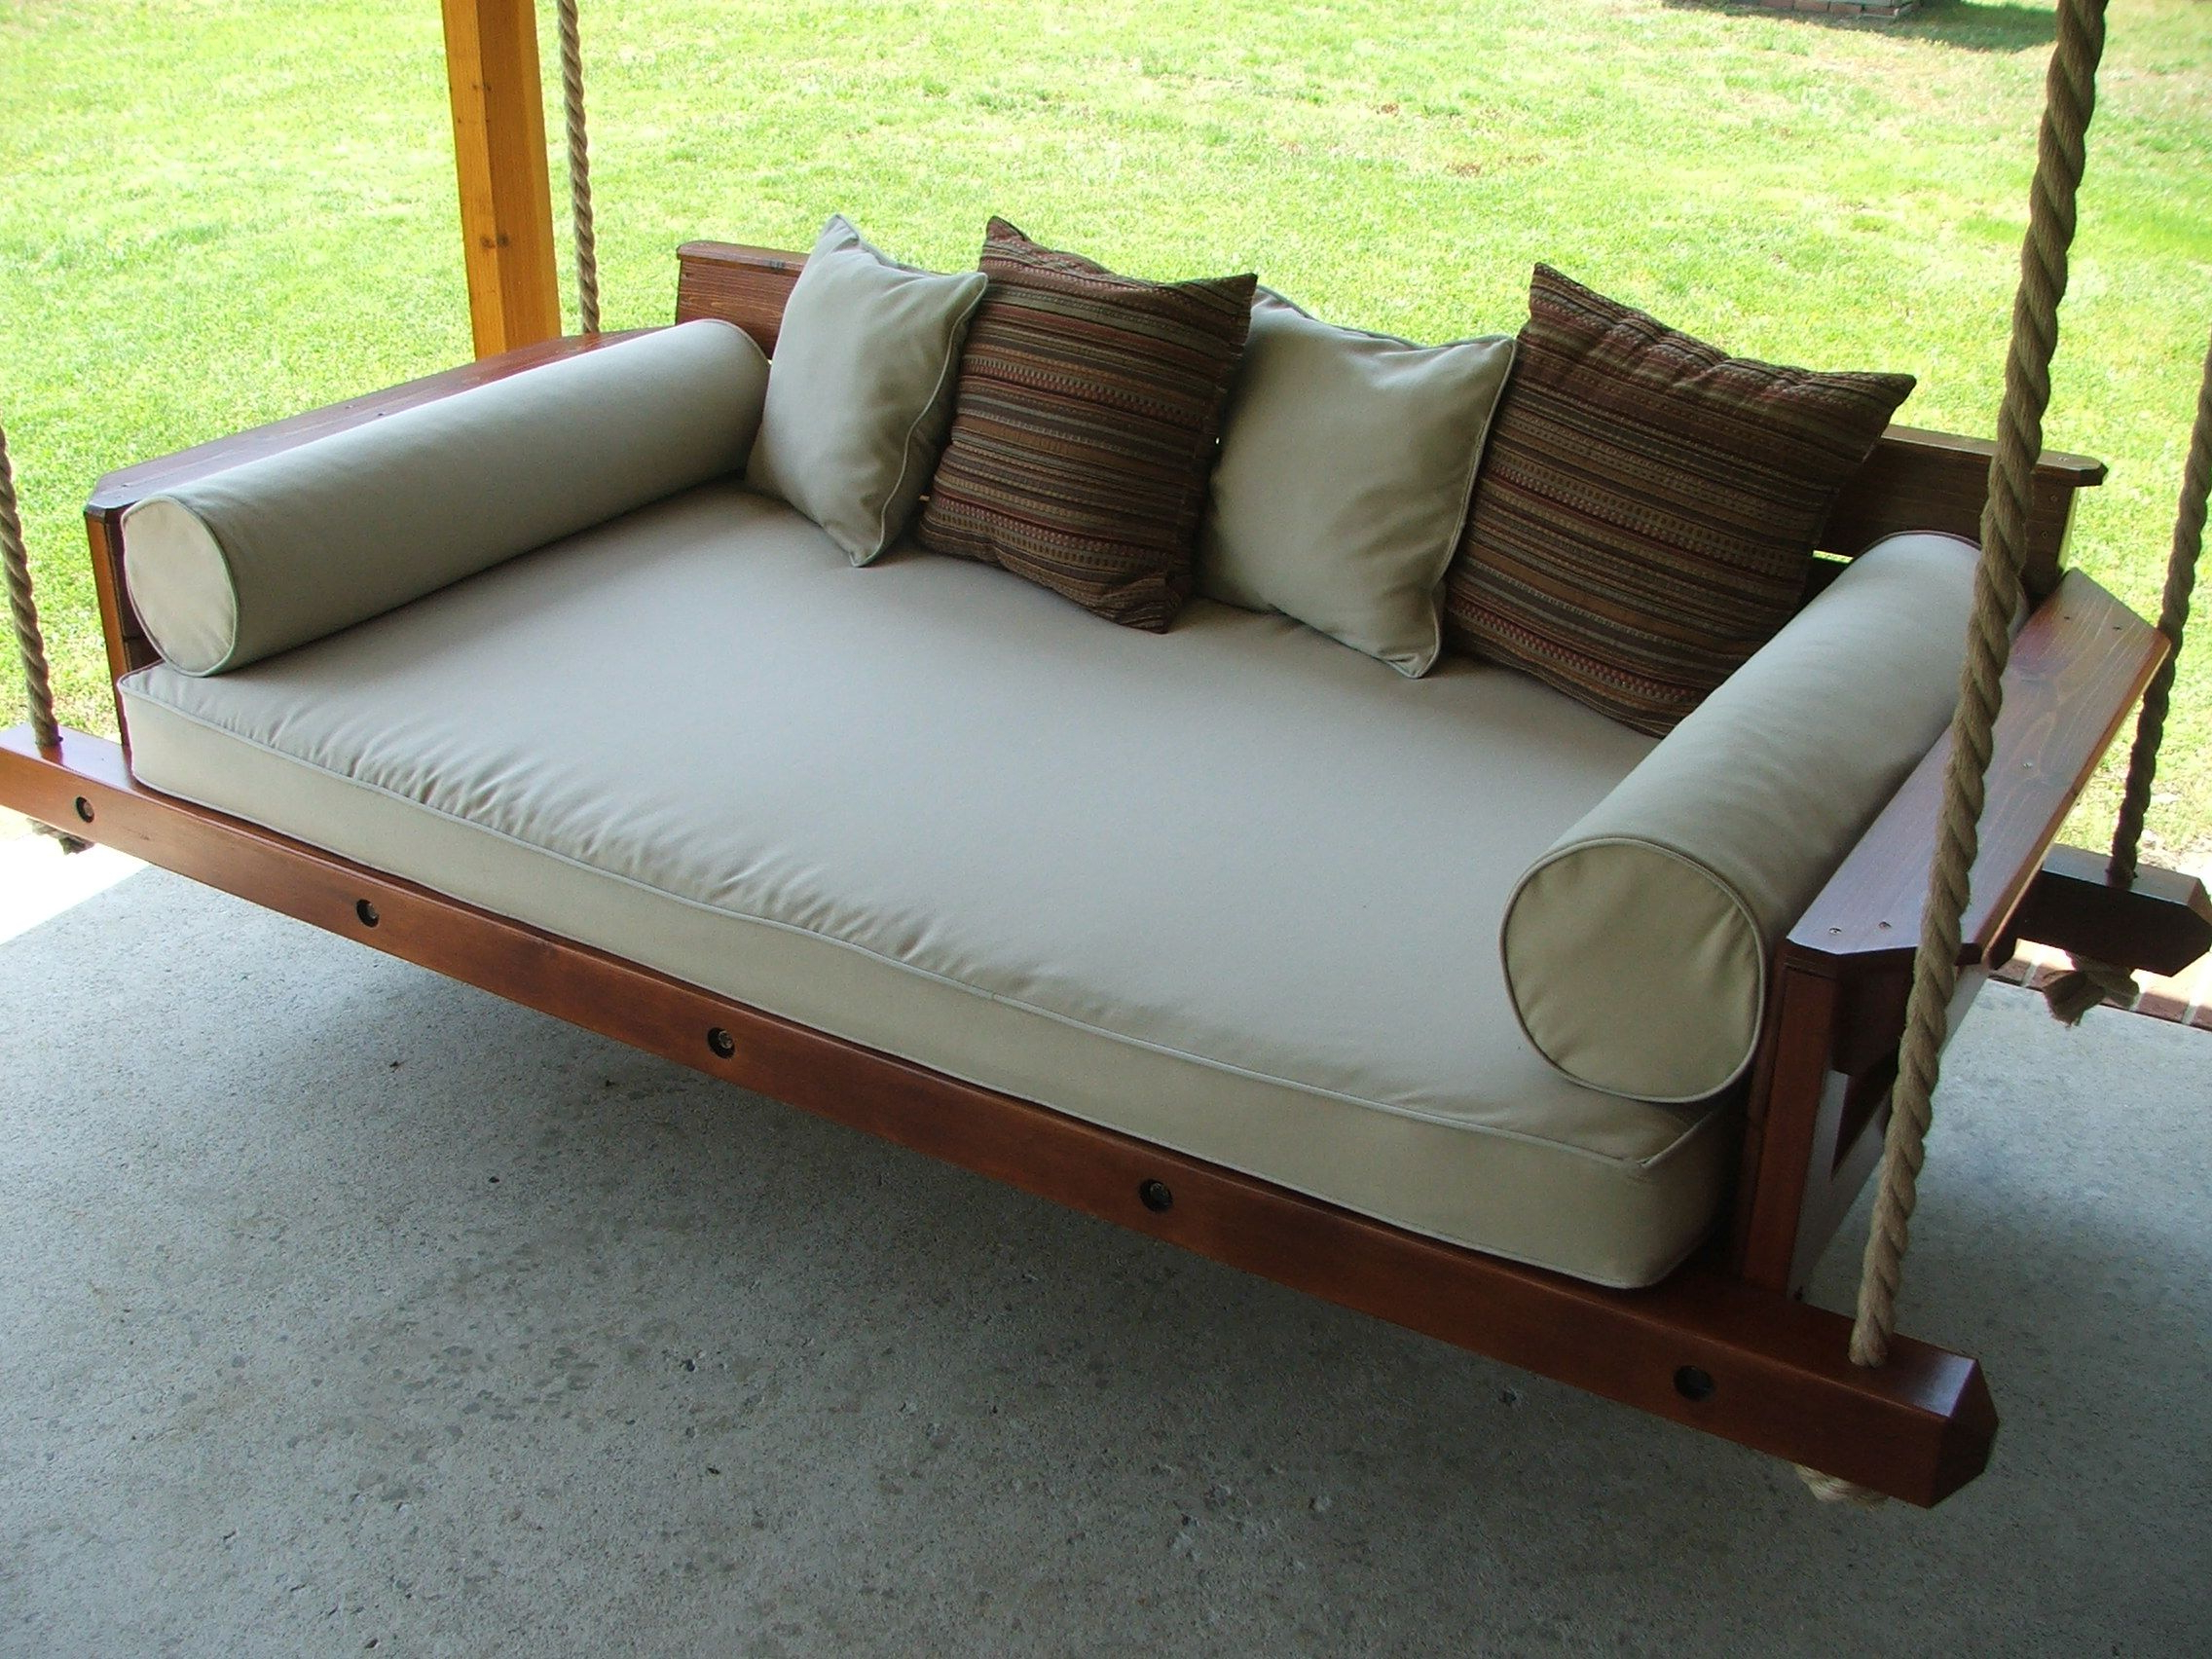 Custom Rustic Porch Bed Swingcarolina Porch Swings For Latest Country Style Hanging Daybed Swings (Gallery 9 of 30)